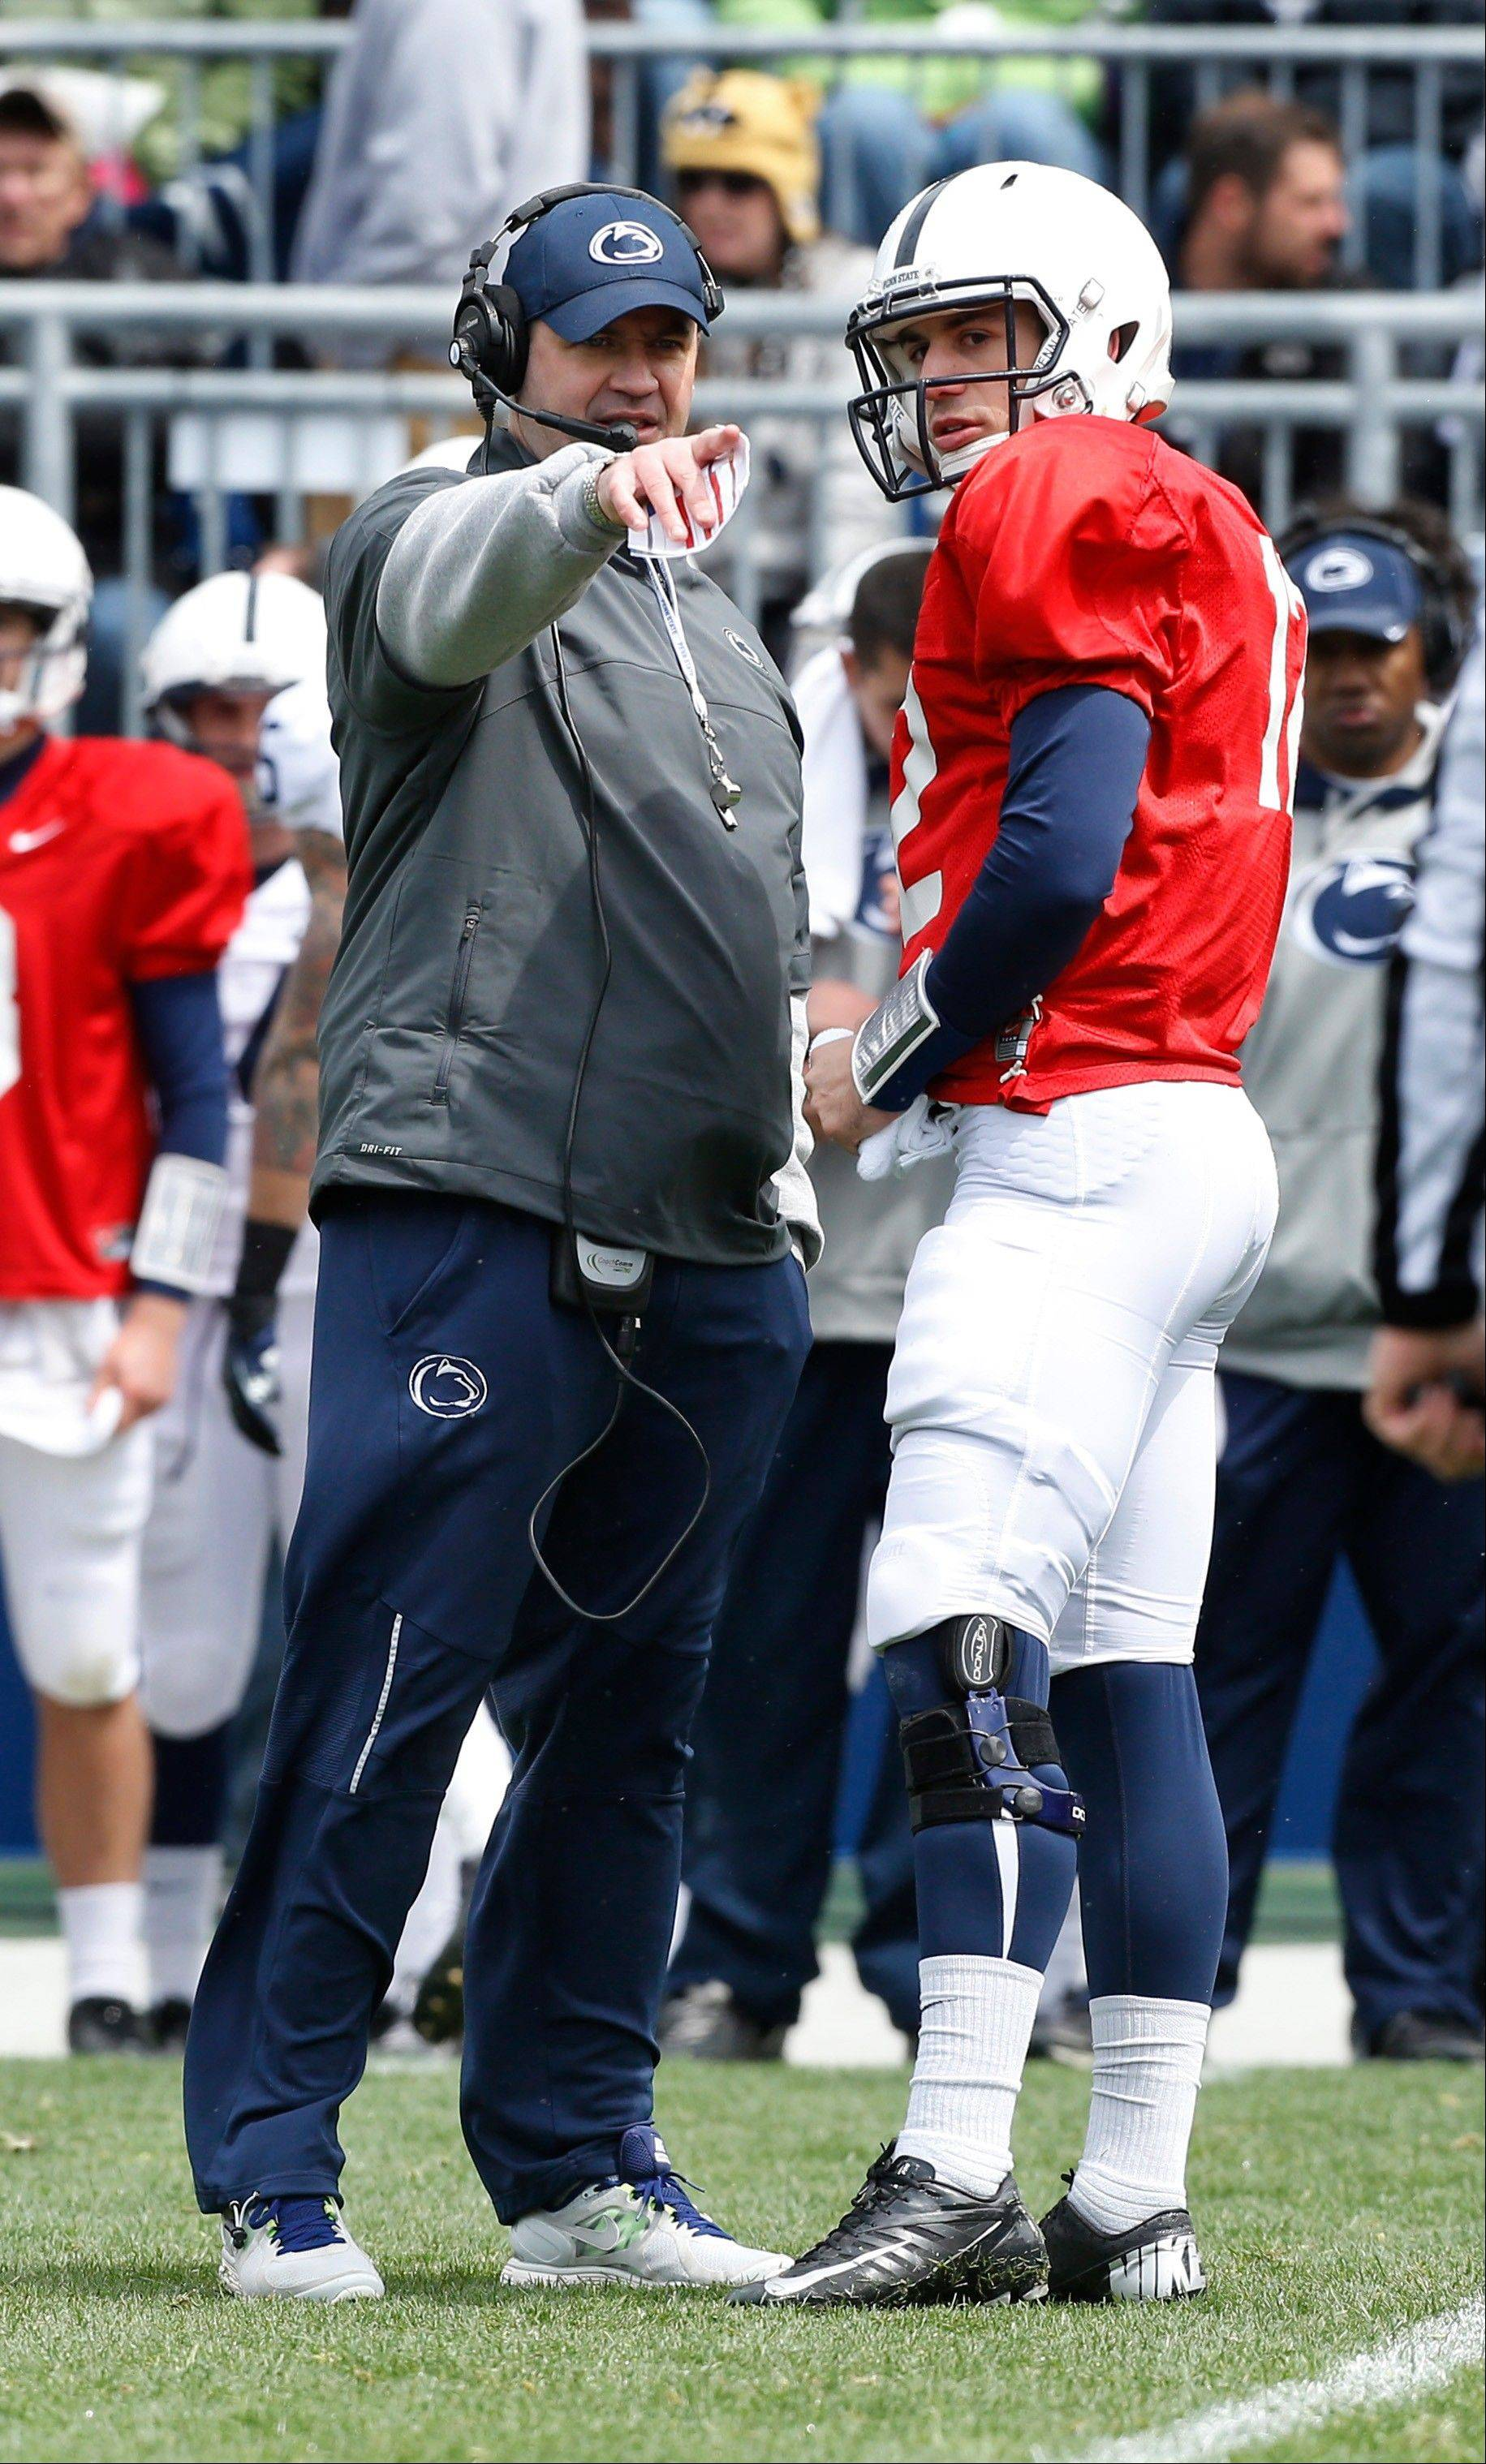 Penn State head coach Bill O�Brien talks with quarterback Steven Bench during a spring game in State College, Pa. The Nittany Lions open a season of promise Saturday against Syracuse, and the quarterback situation remains unsettled, at least in the public eye.